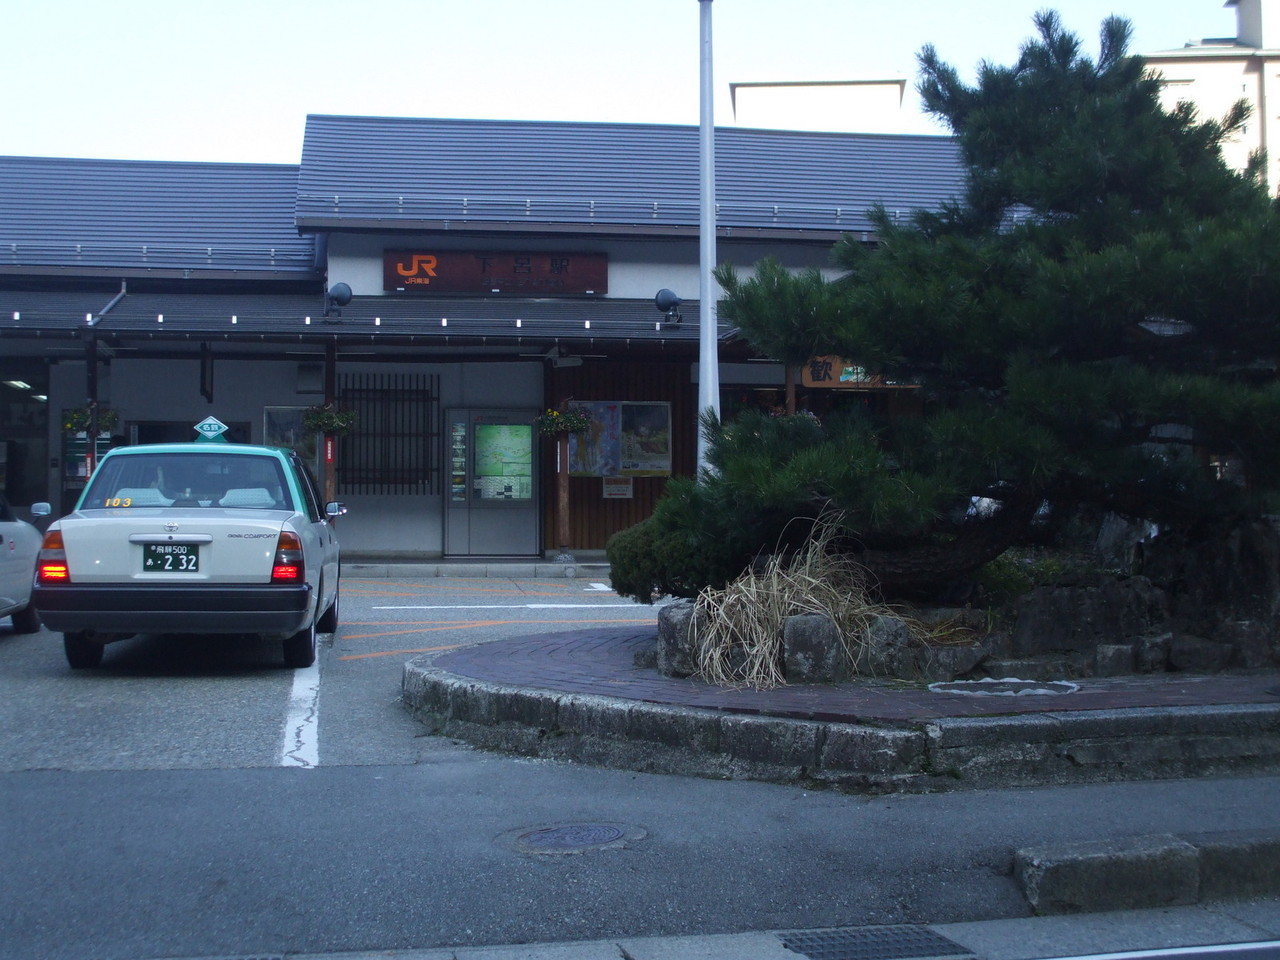 Japan gero onsen, gifu prefecture2